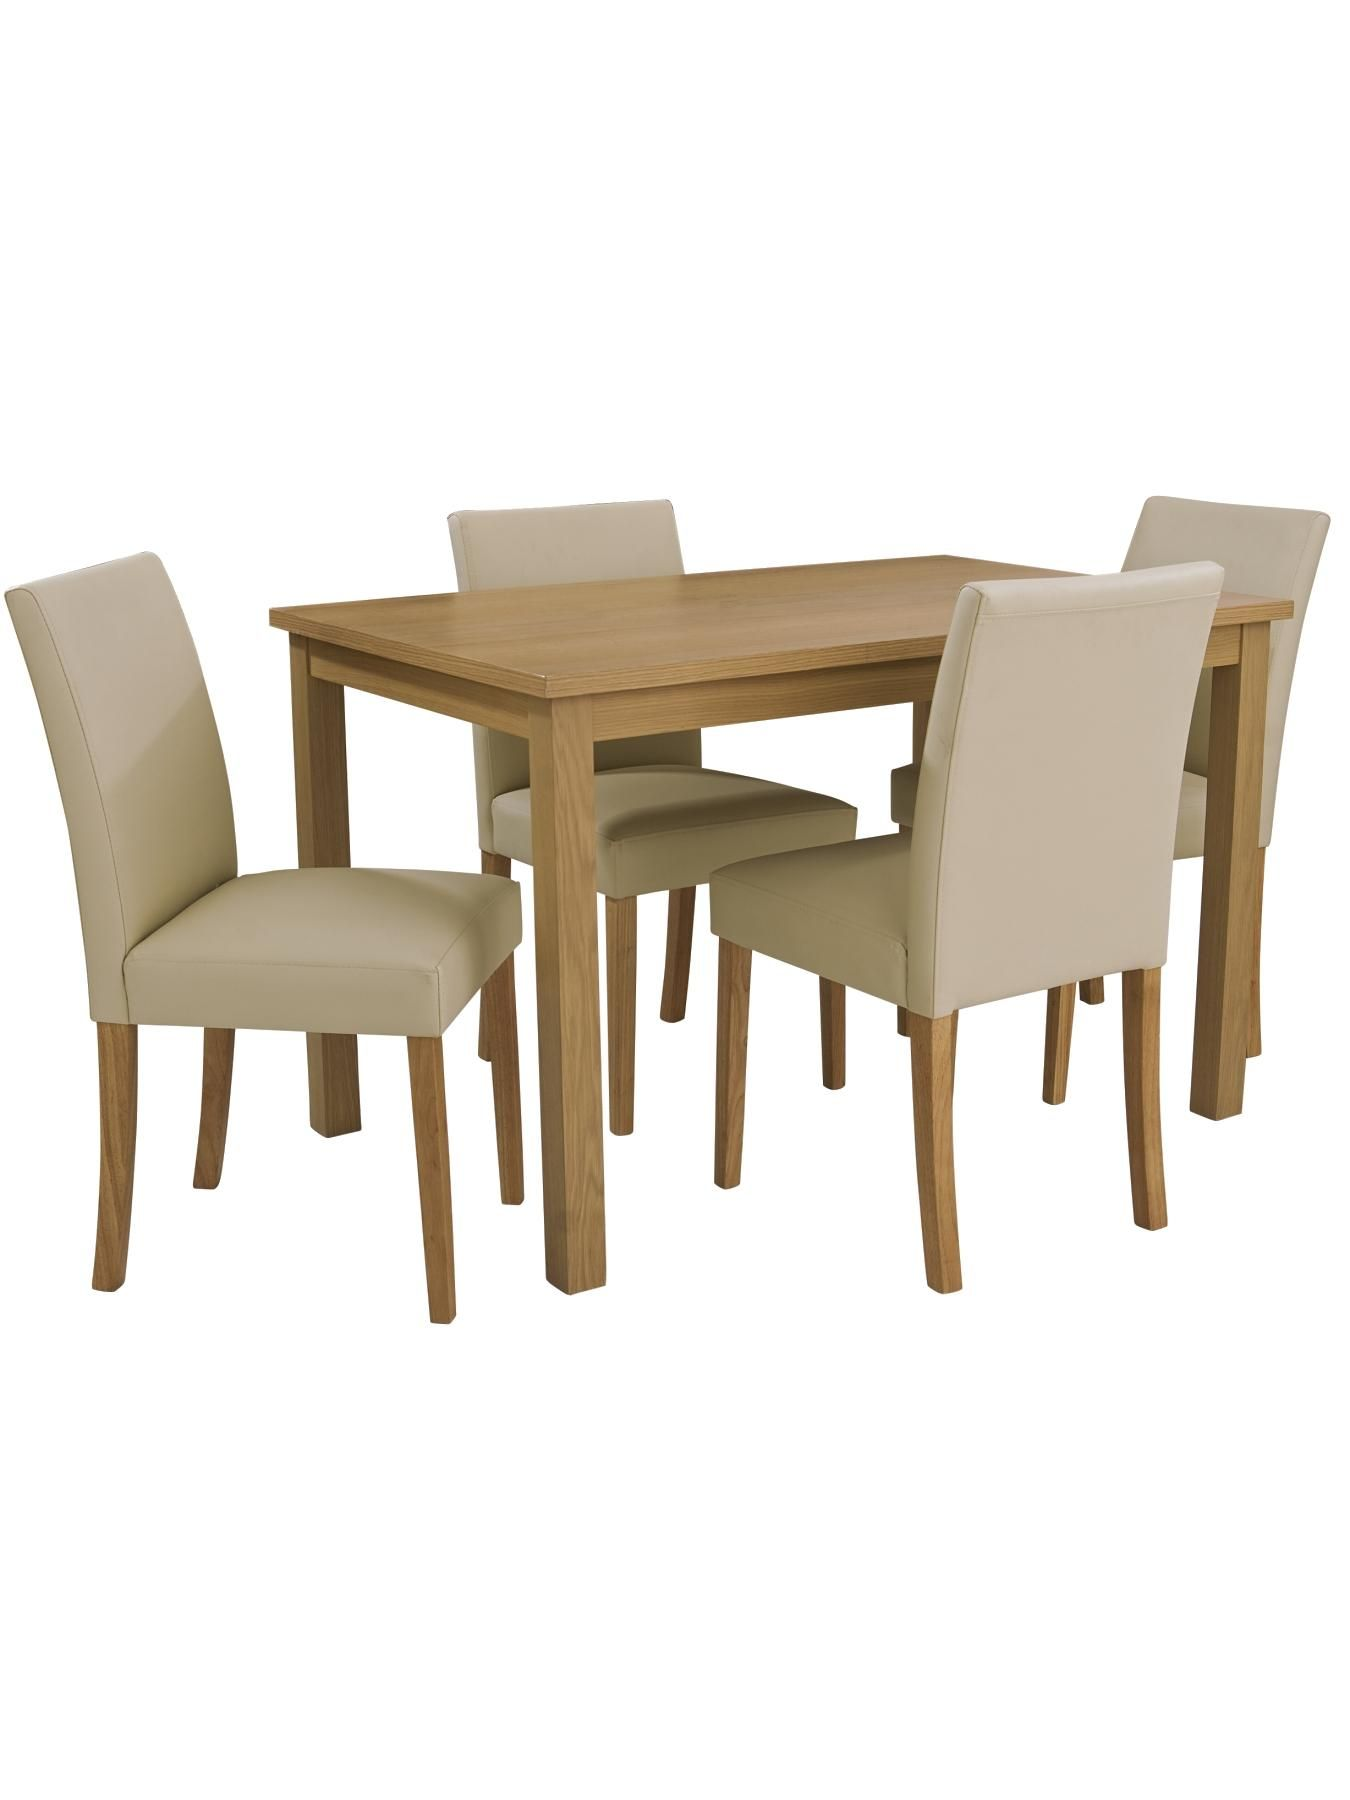 Primo 120 cm Dining Table and 4 Lucca Chairs Set  10b38e79e1